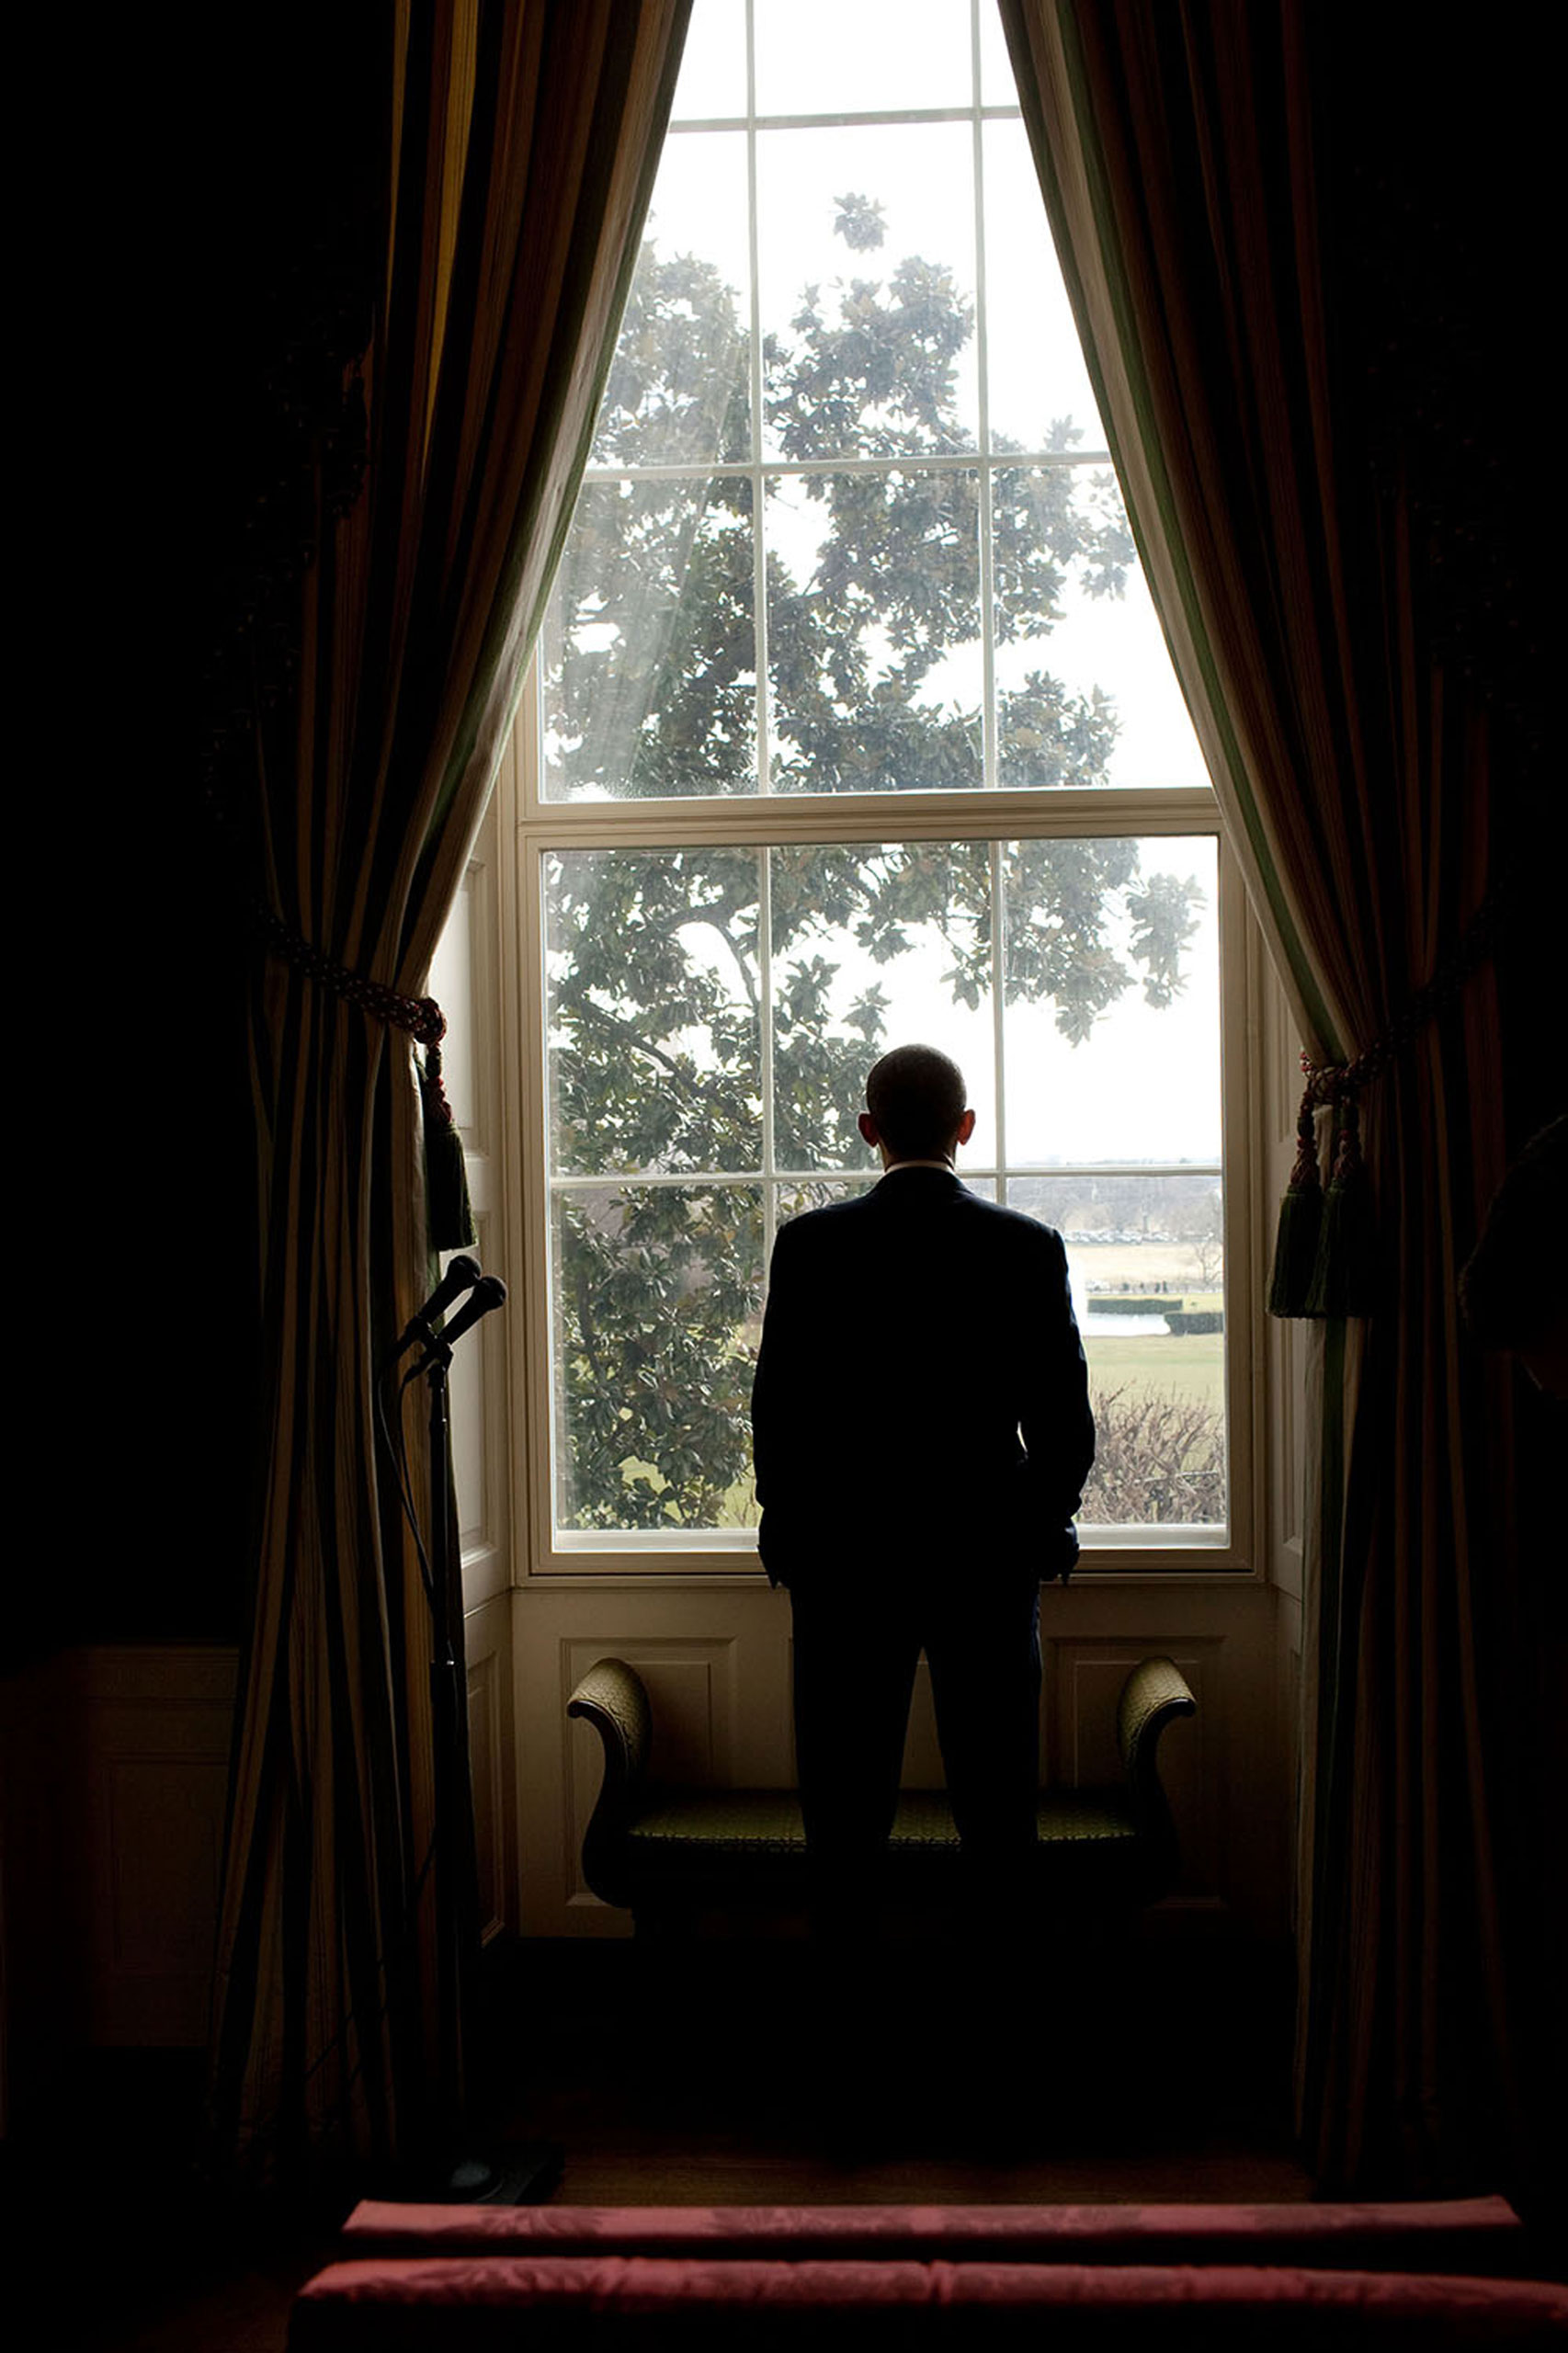 """""""While waiting to be introduced for an event in the East Room of the White House, the President looks out a window in the Green Room towards a view of the Washington Monument and Jefferson Memorial,"""" Jan. 6, 2010."""